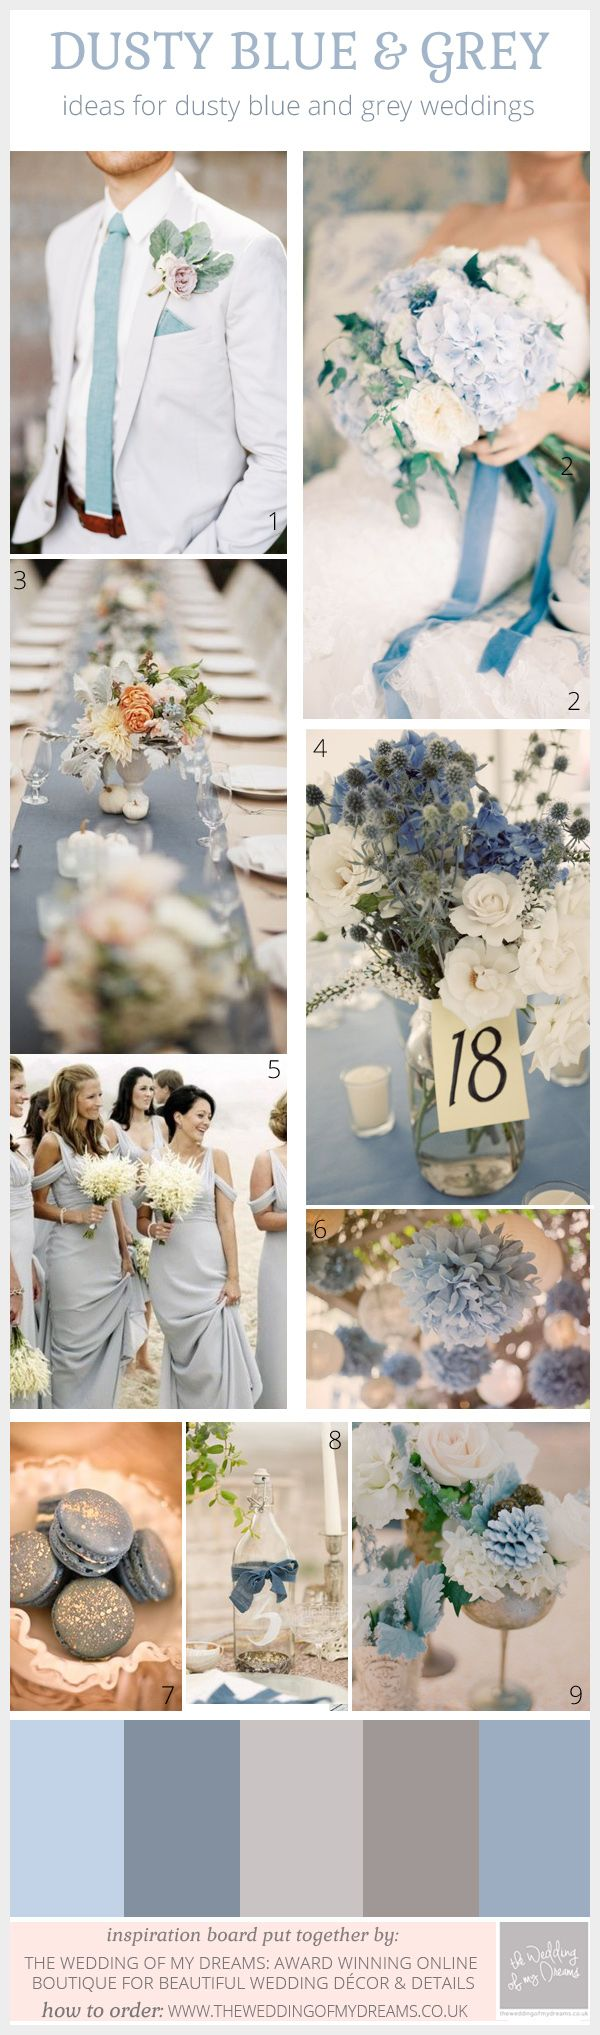 Wedding decorations yellow and gray  Dusty Blue And Grey Wedding Ideas u Inspiration  Dusty blue Grey